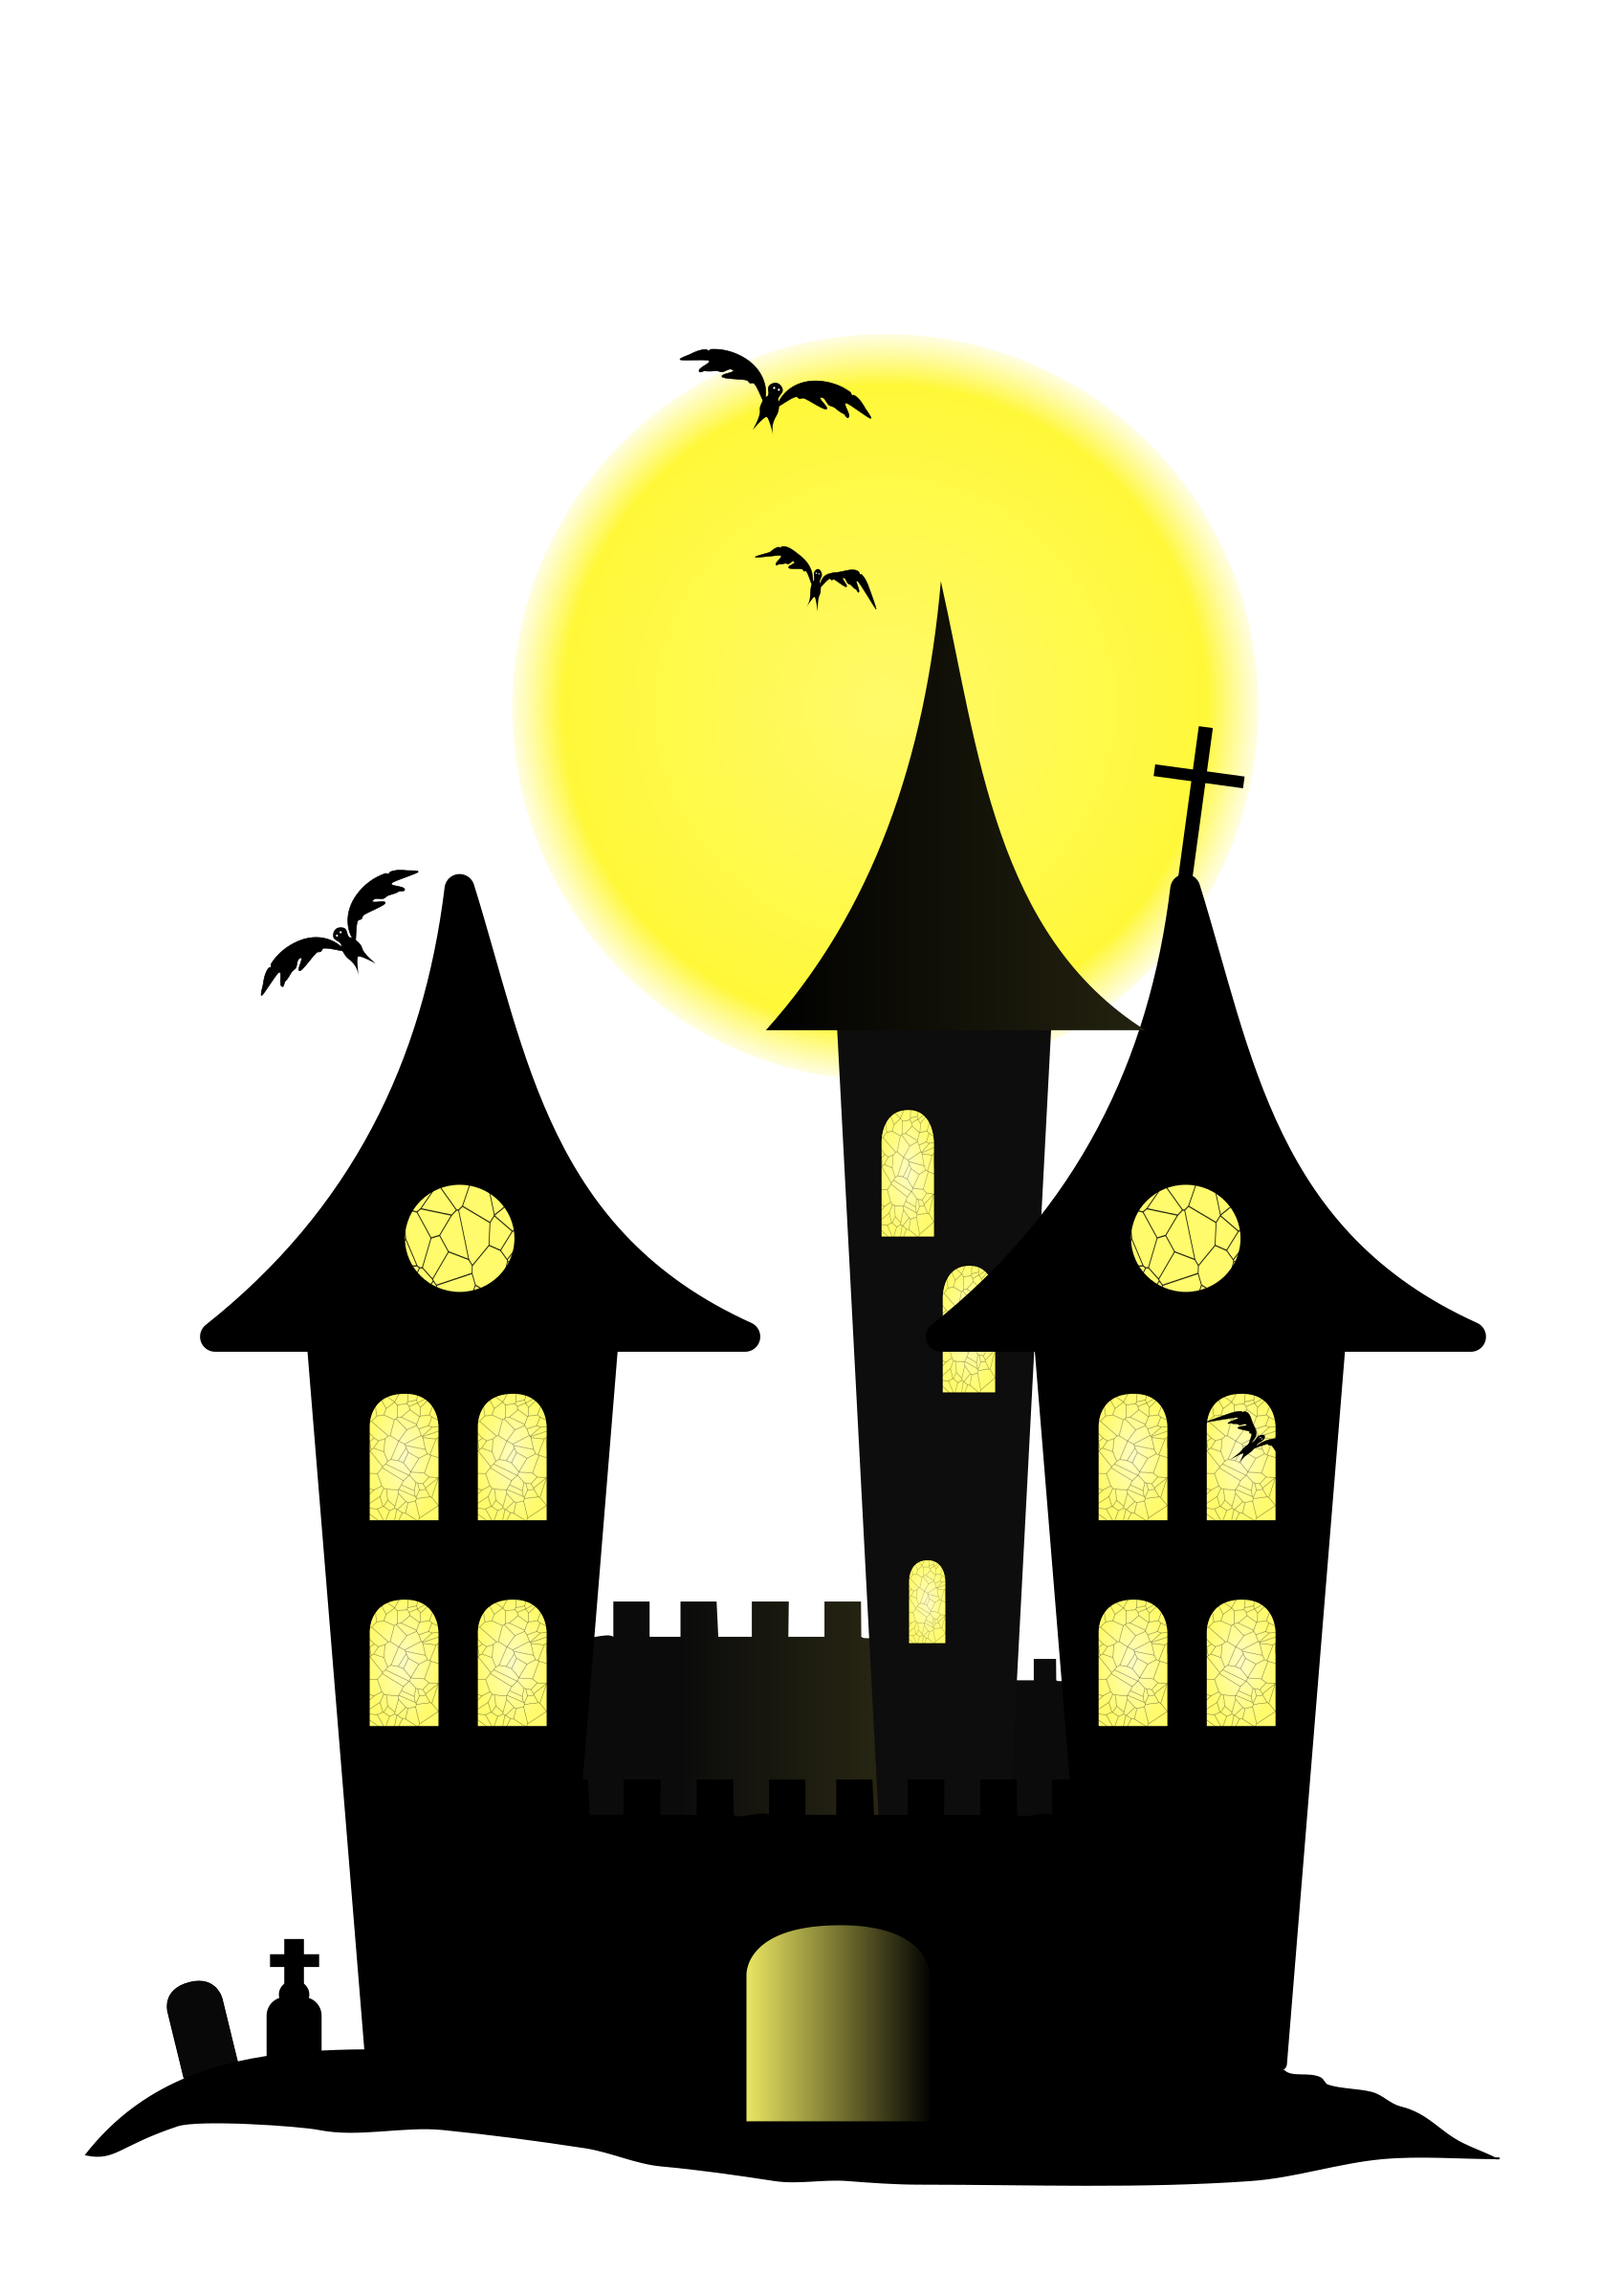 Halloween Castle Clip art - Castle png download - 1697*2400 - Free ...